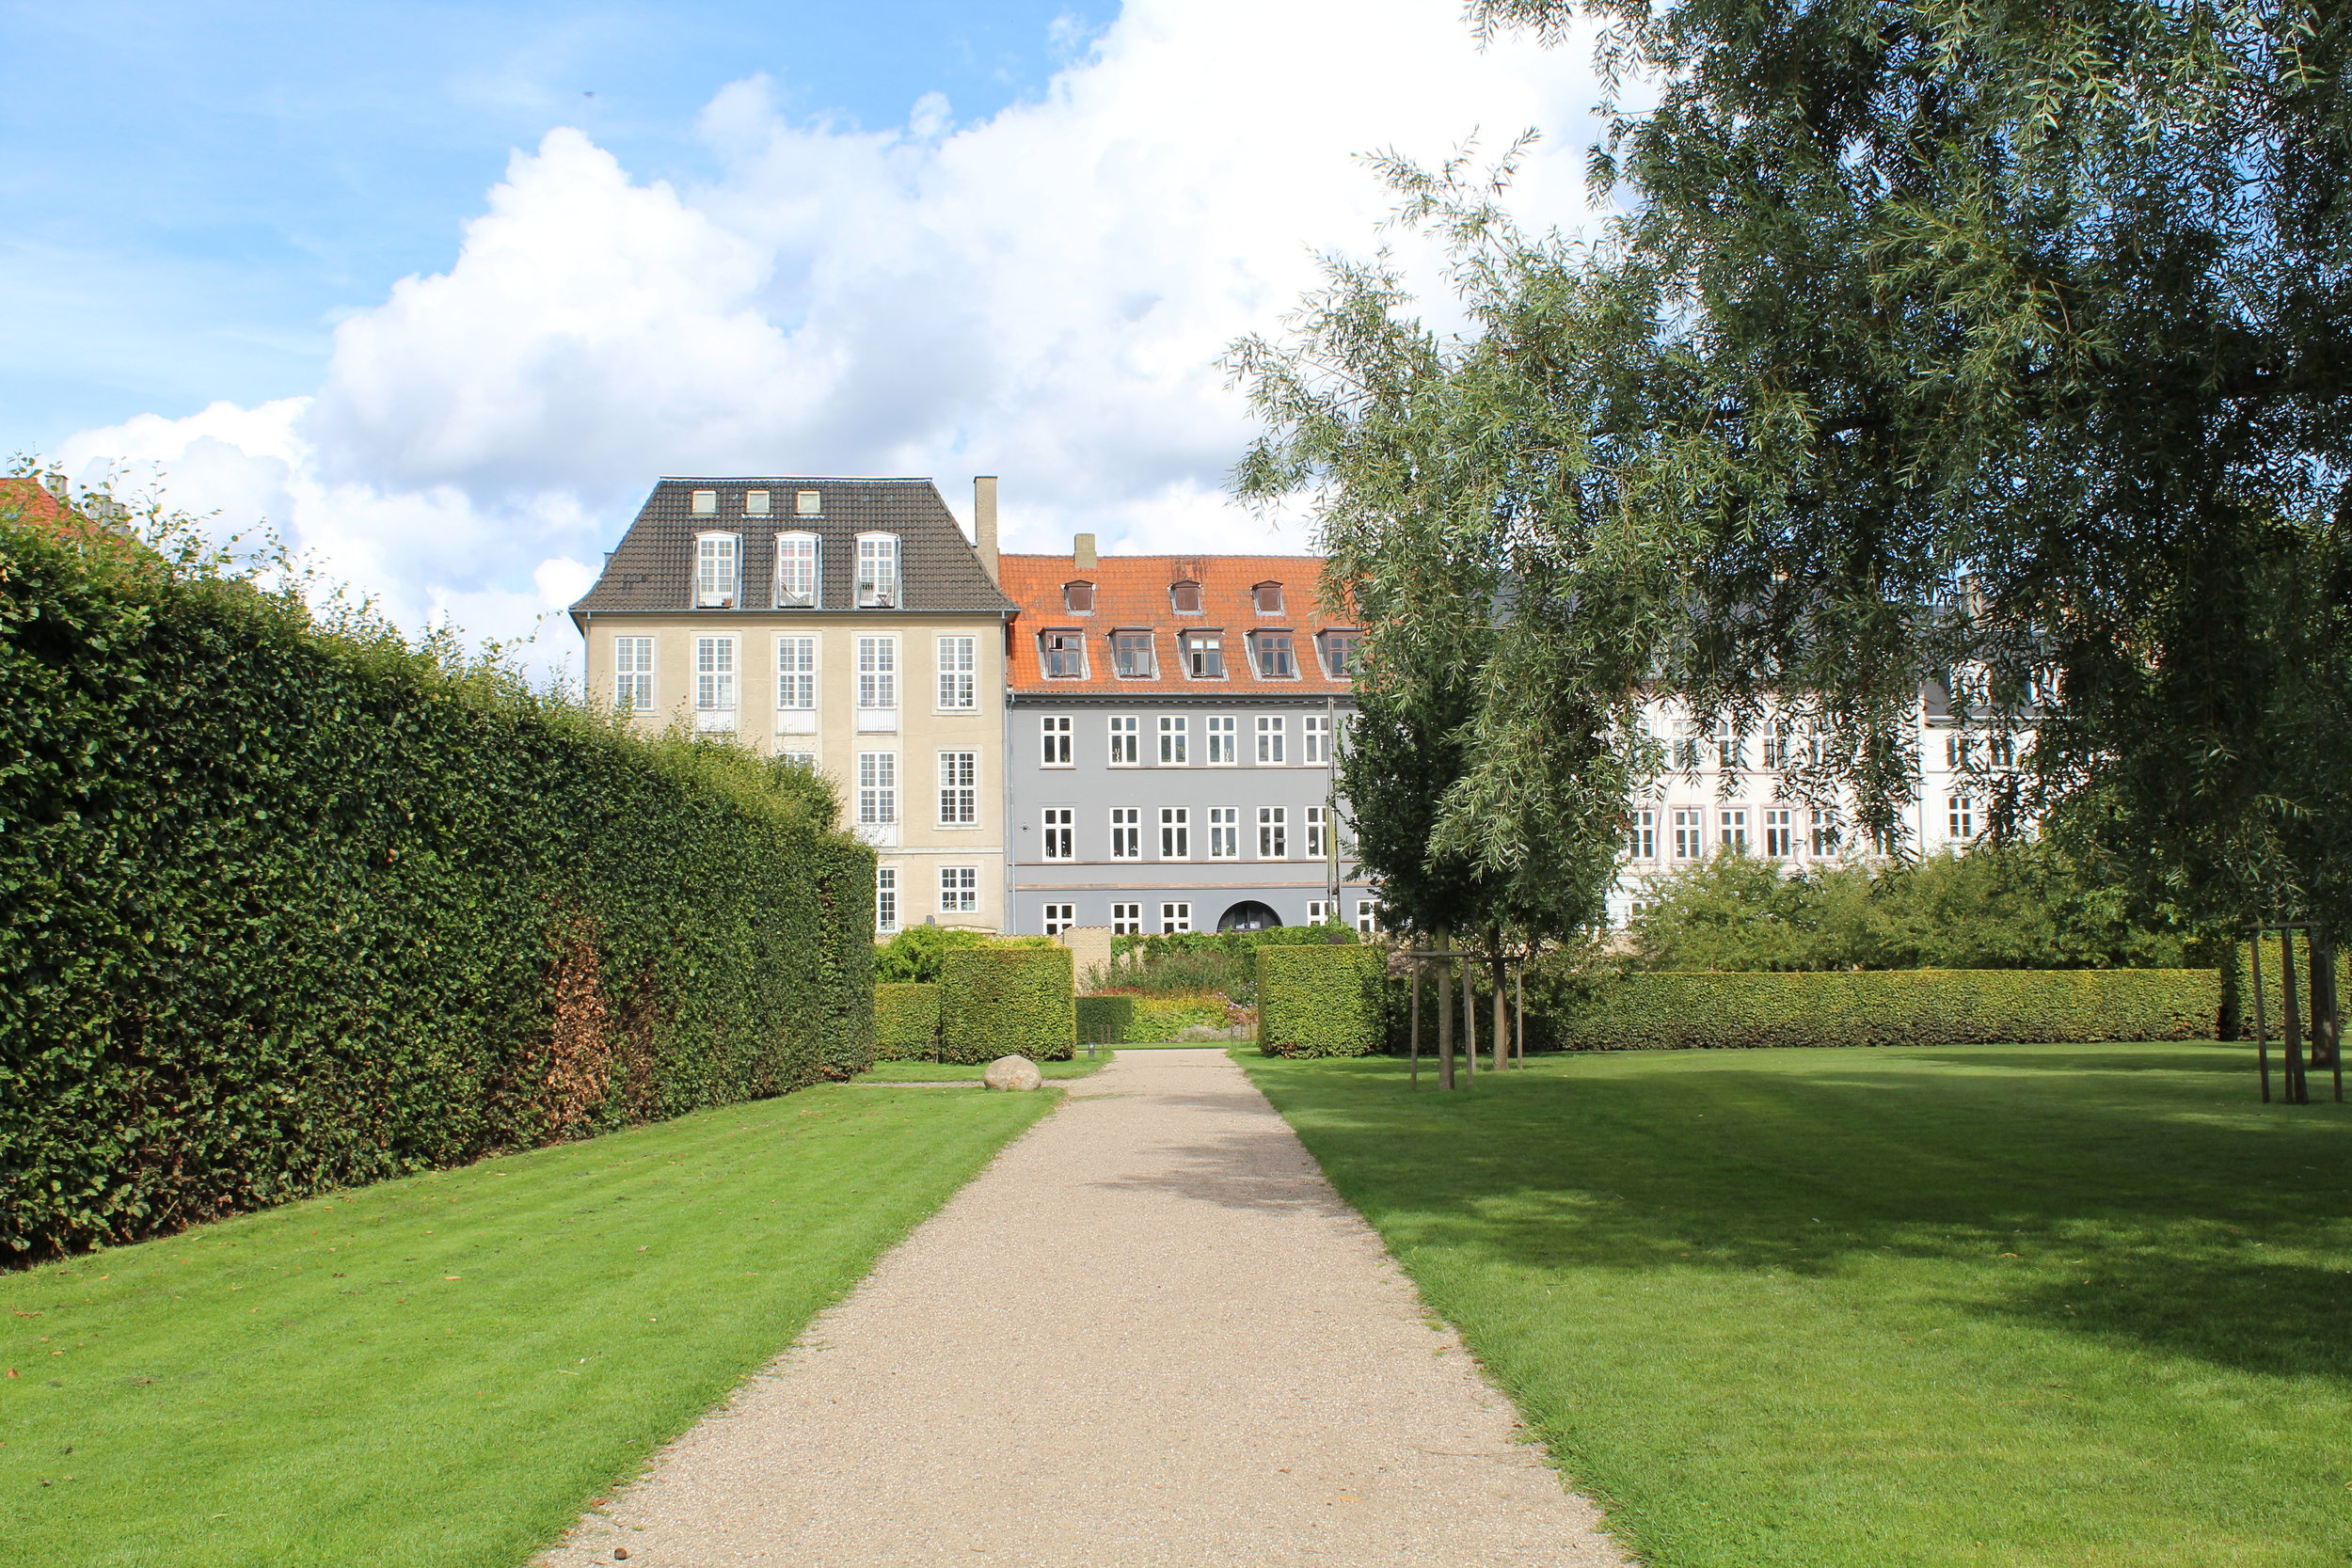 A path in the King's Garden, adjacent to Rosenborg Castle.